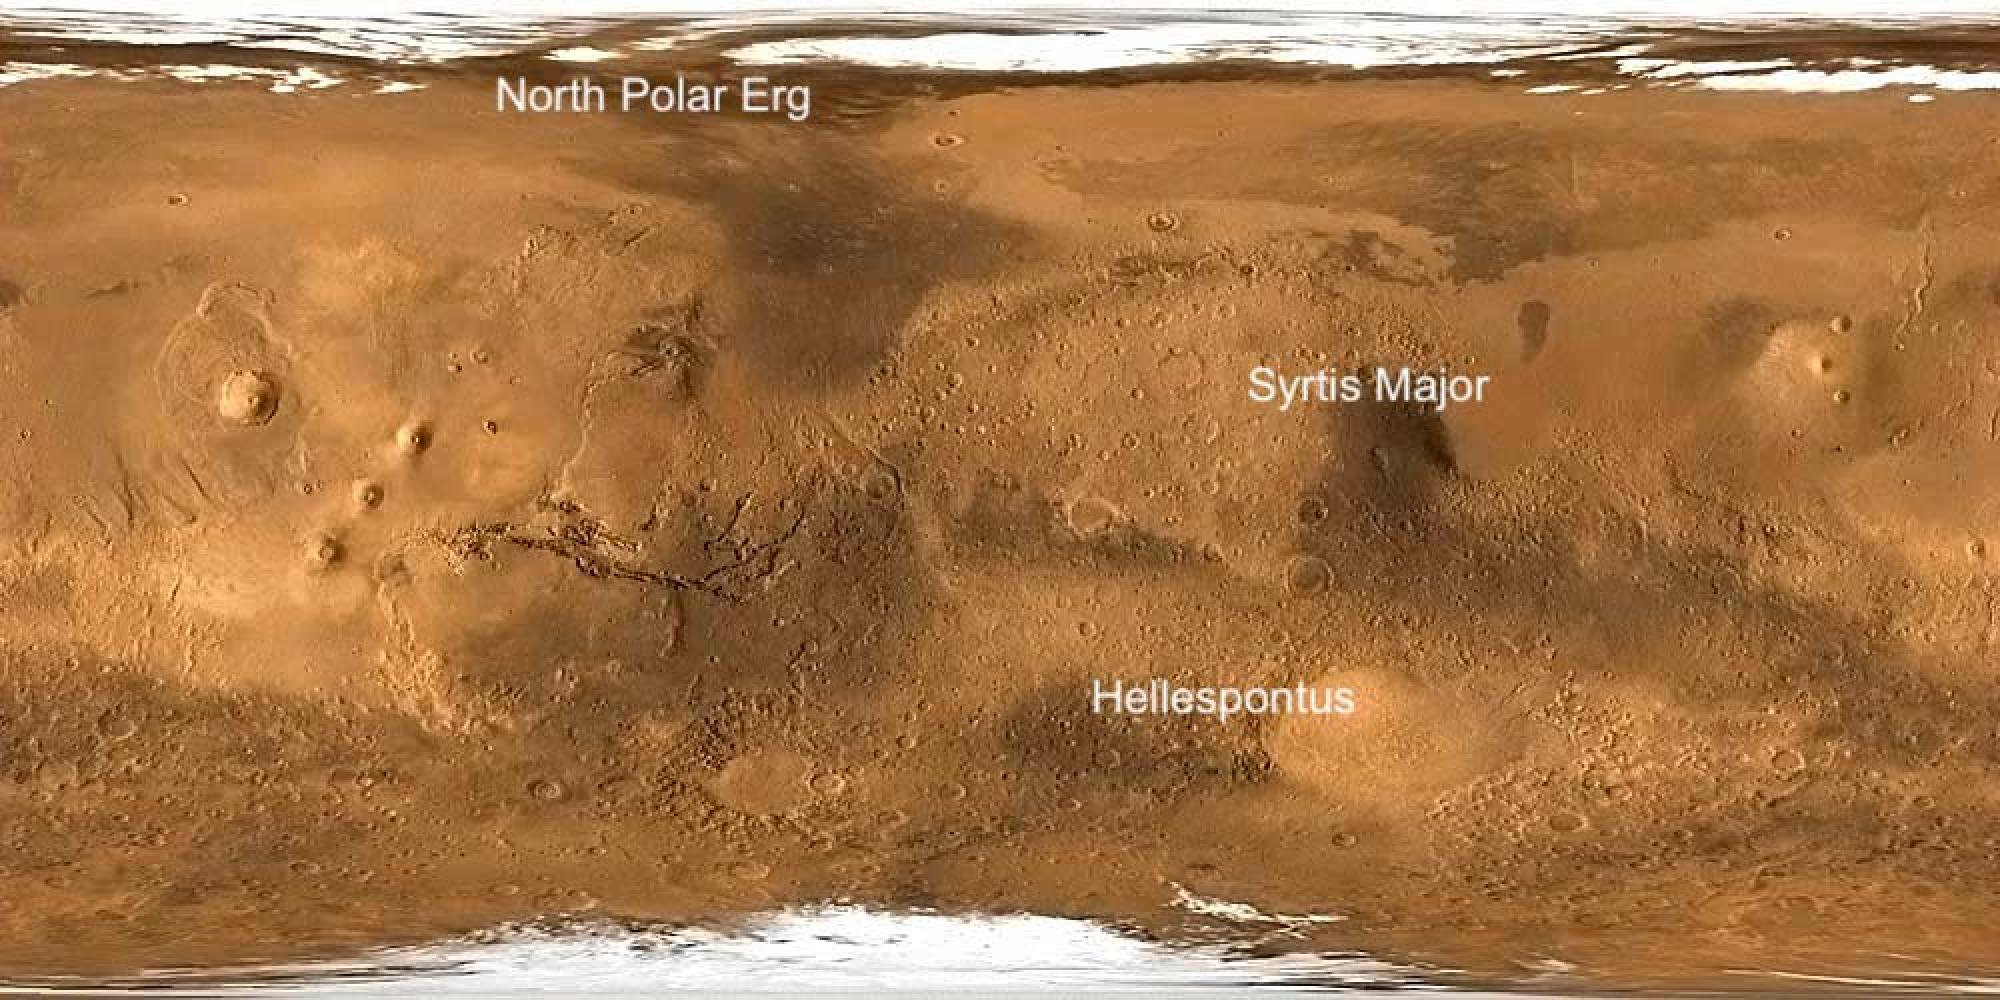 In the study, the regions with the largest rates of dune movement were found to be at the boundary of Isidis Basin and Syrtis Major, the Hellespontus mountain range and surrounding the North polar ice cap.